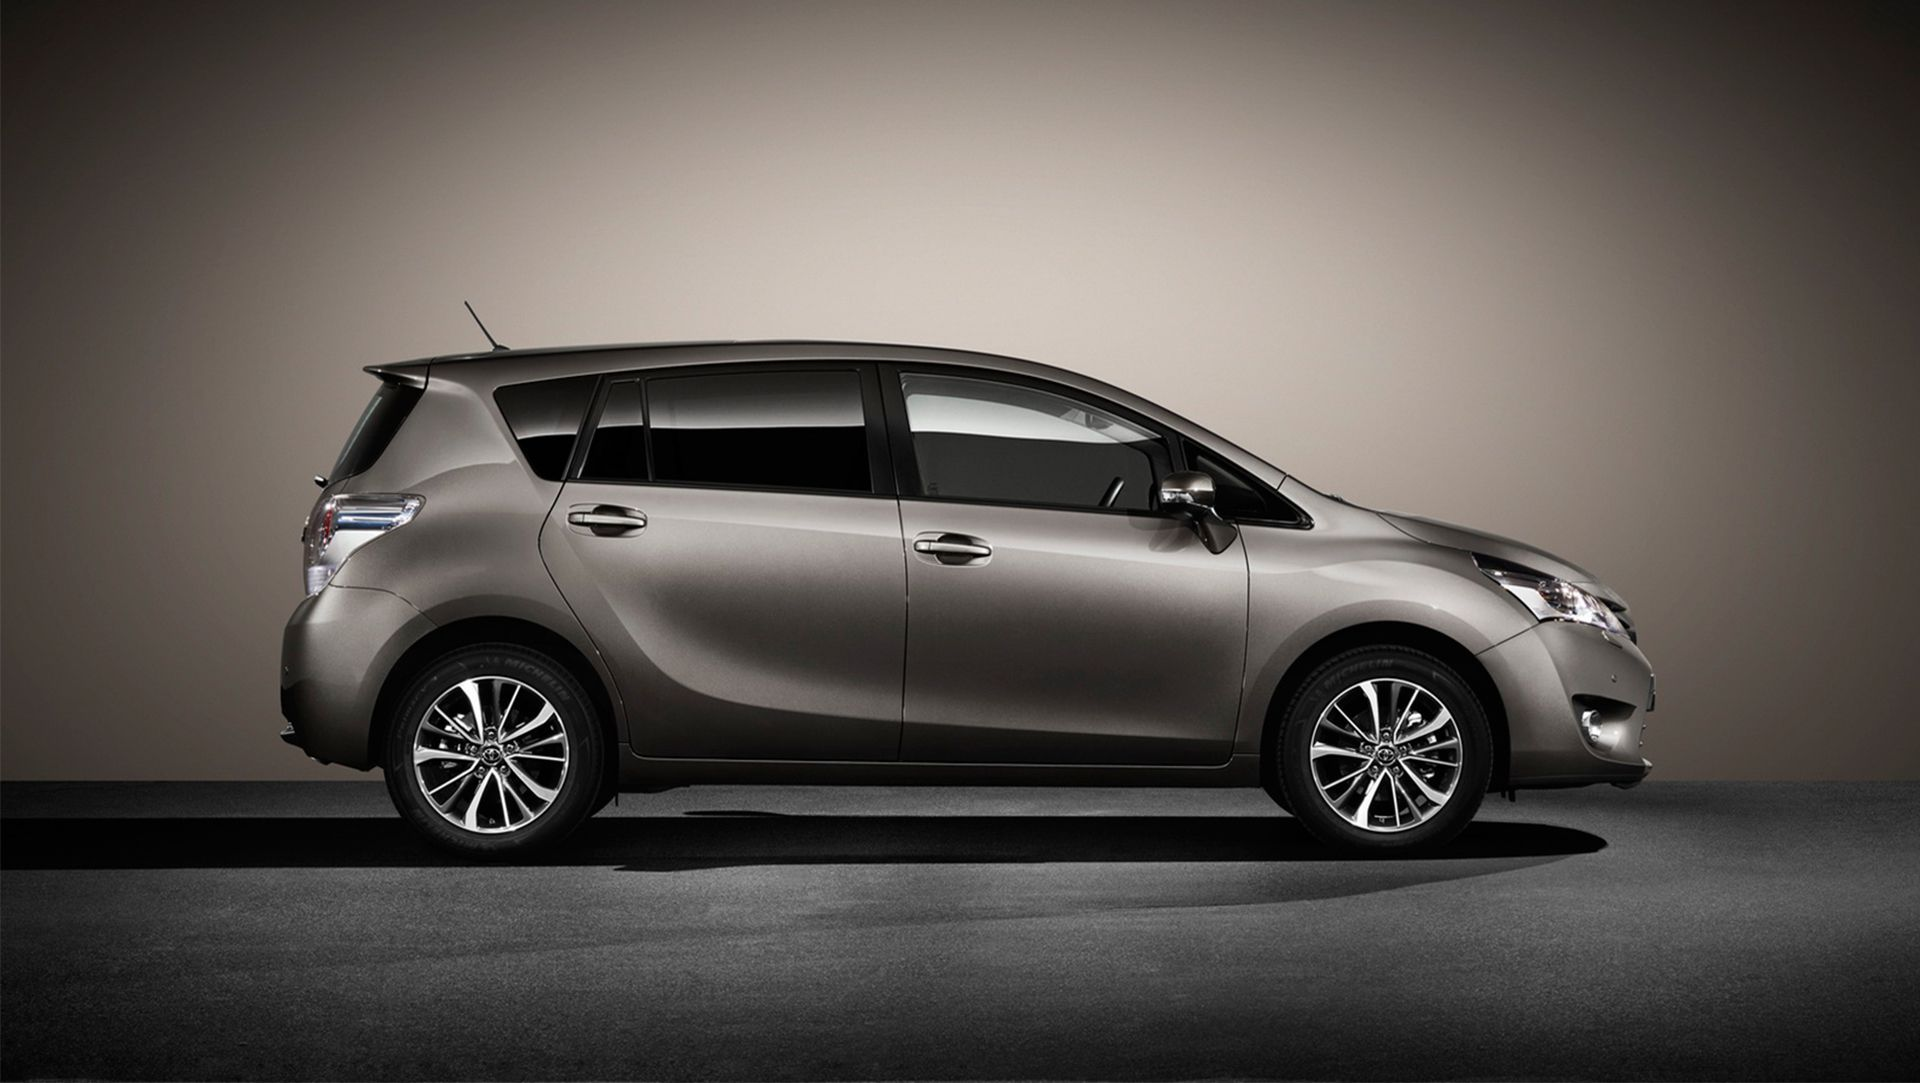 2016 Toyota Verso Mpv Gets Upgraded Auto Moto Japan Bullet 2015 Interior